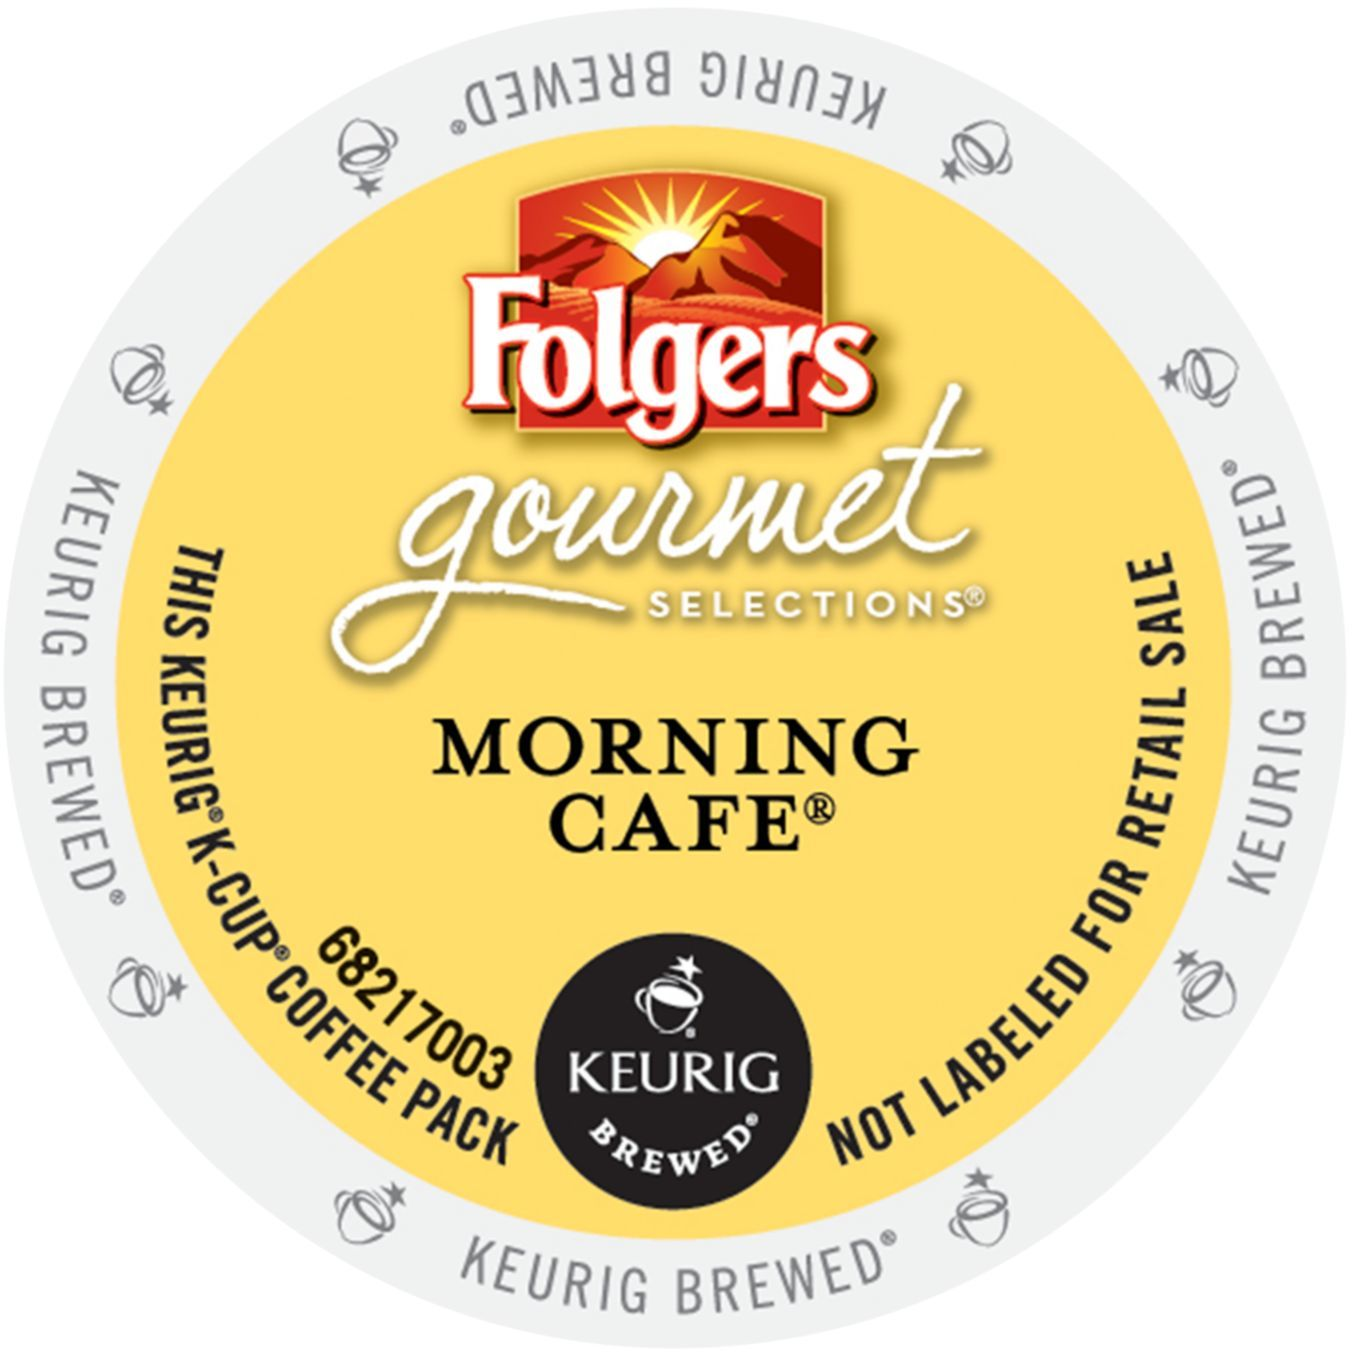 Folgers Gourmet Selections Morning Cafe Coffee, K-Cup Portion Pack for Keurig Brewers (96 Count) (4x16oz)